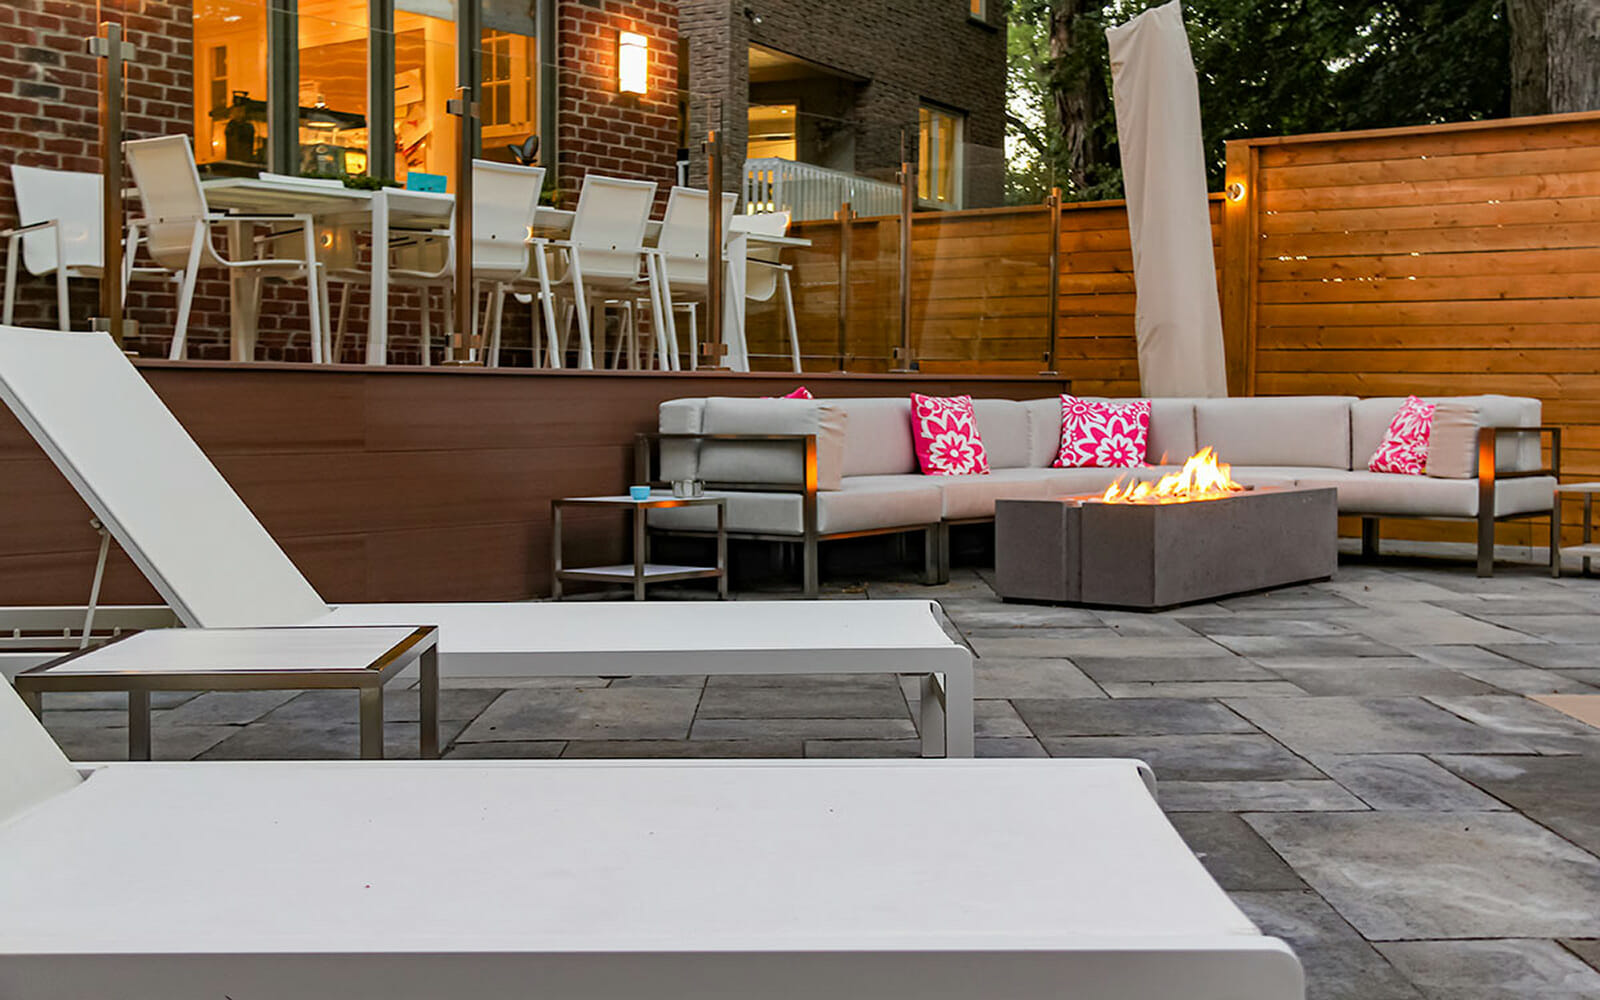 Complete Backyard Toronto Landscaping Design Project; Featuring Outdoor Fireplace, Interlocking & Azek Deck Build with Stainless Steel Glass Railing by The Toronto Landscaping Company.